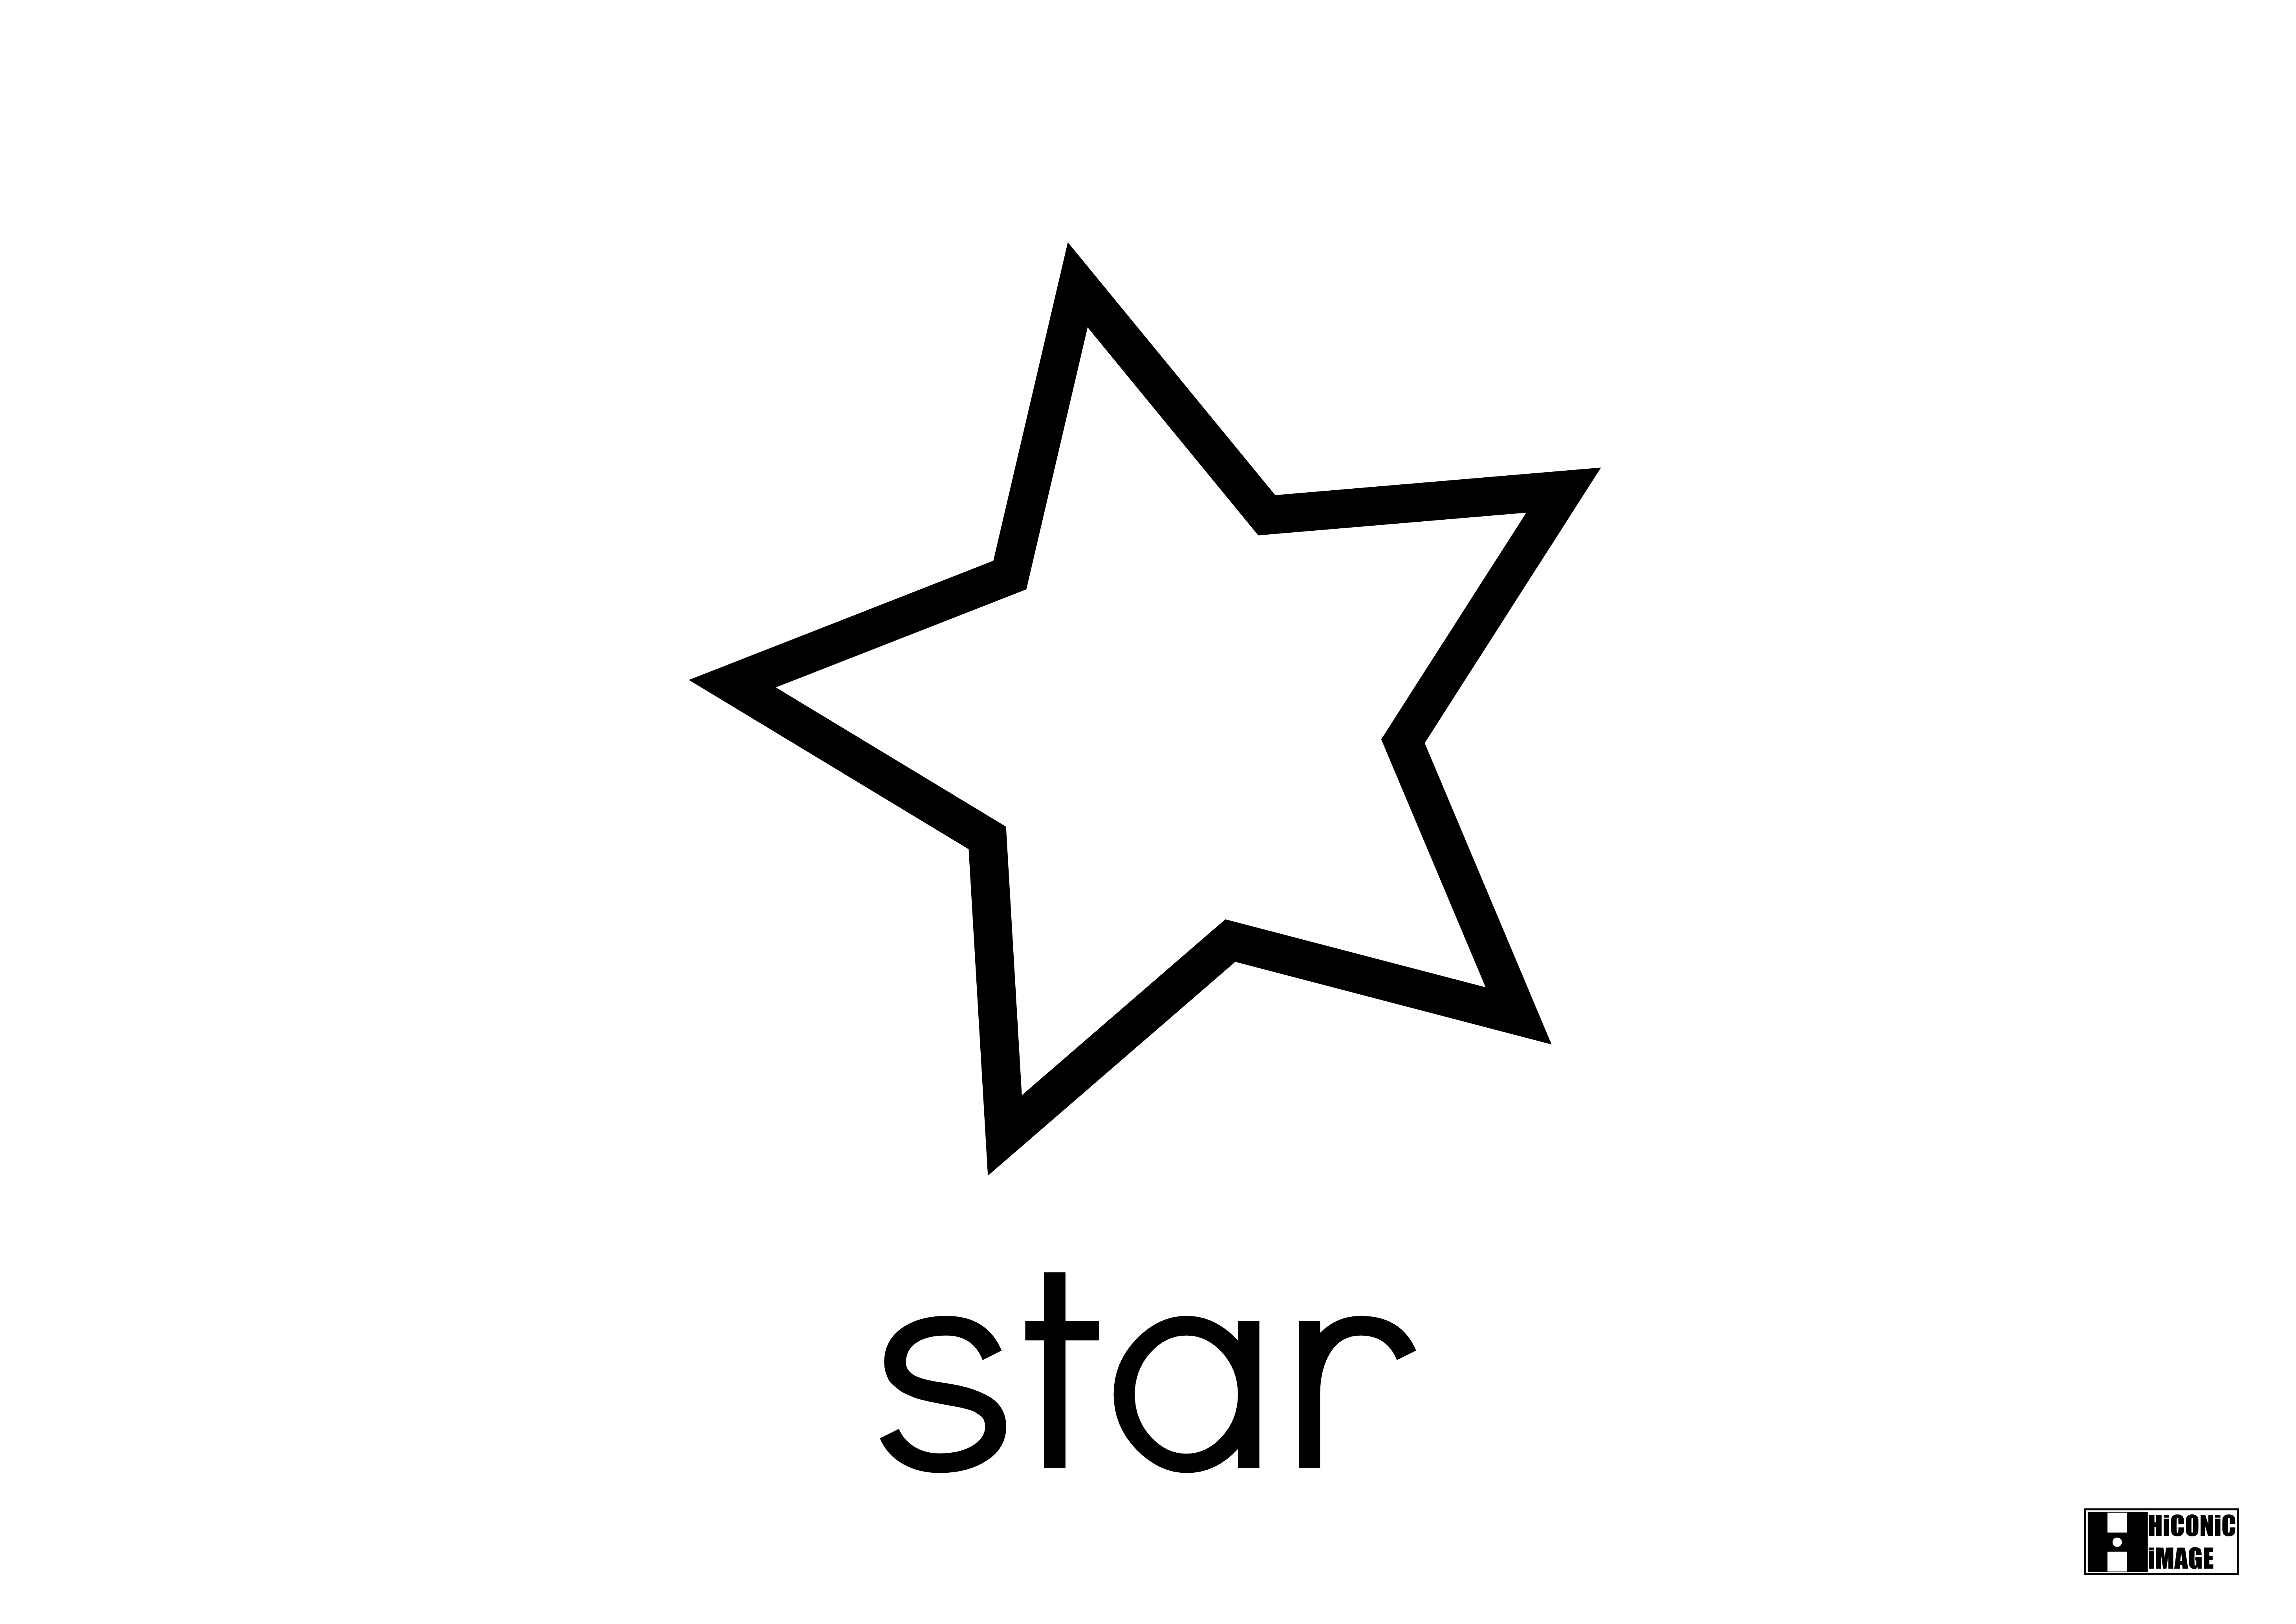 Star shape images for How to cut a perfect star